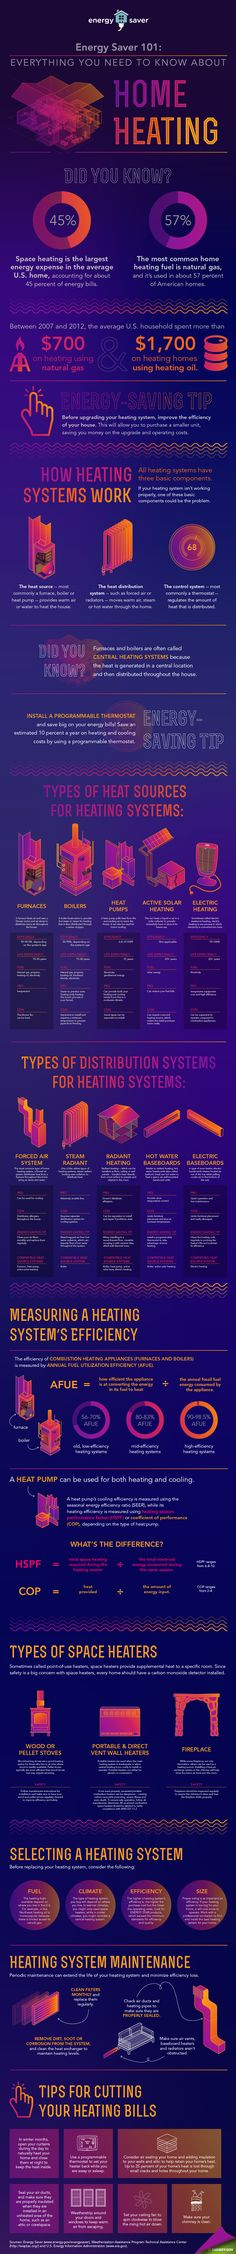 This new Energy Saver 101 infographic lays out everything you need to know about home heating— from how heating systems work and the different types on the market to what to look for when replacing your system and proper maintenance. New Energy, Solar Energy, Save Energy, Renewable Energy, Energy Saving Tips, Energy Saver, Home Heating Systems, Energy Efficient Homes, Energy Efficiency